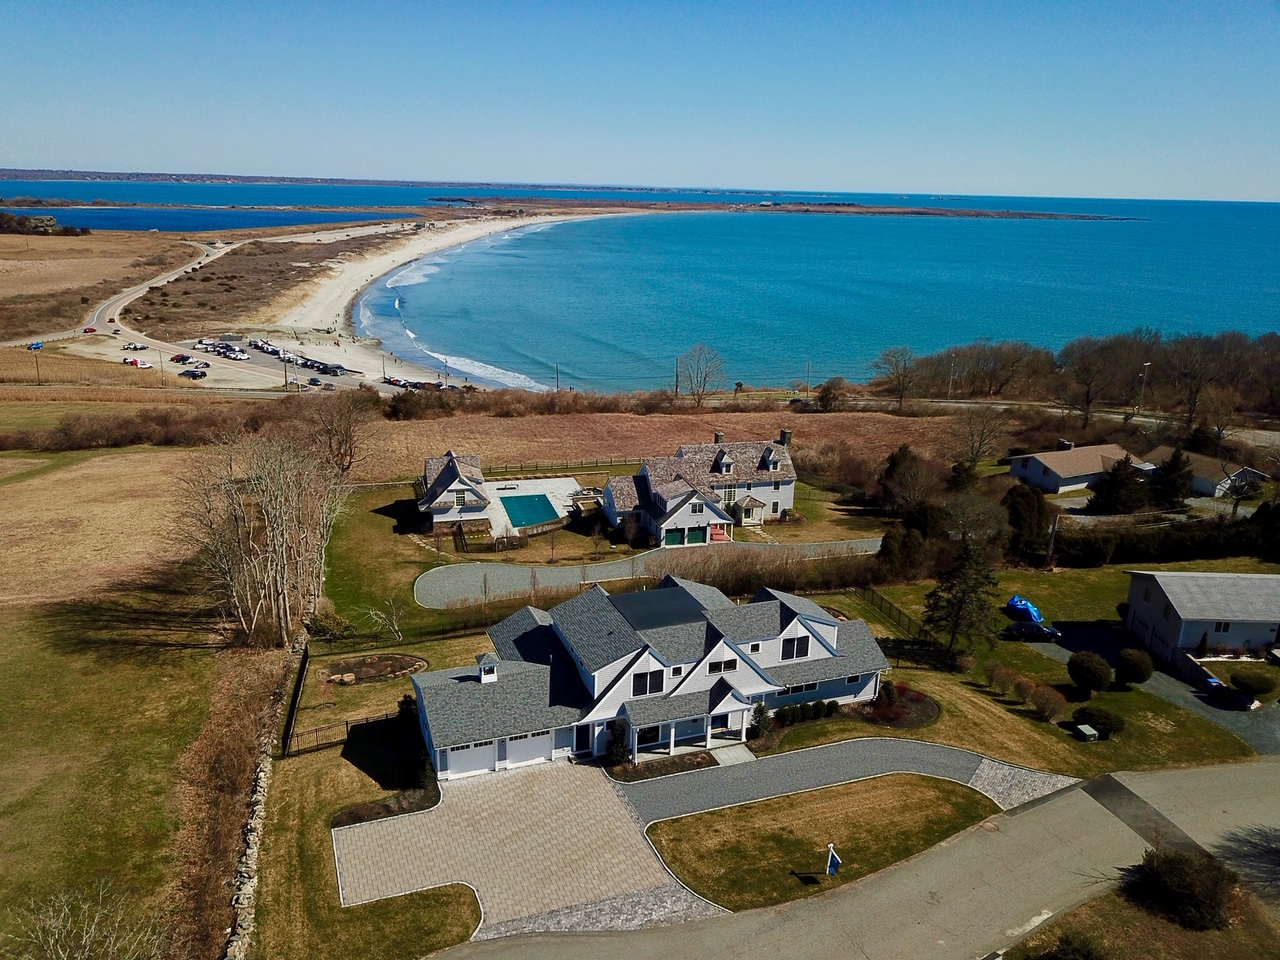 THE PROPERTY, spanning half an acre, features water views. / COURTESY HOGAN ASSOCIATES